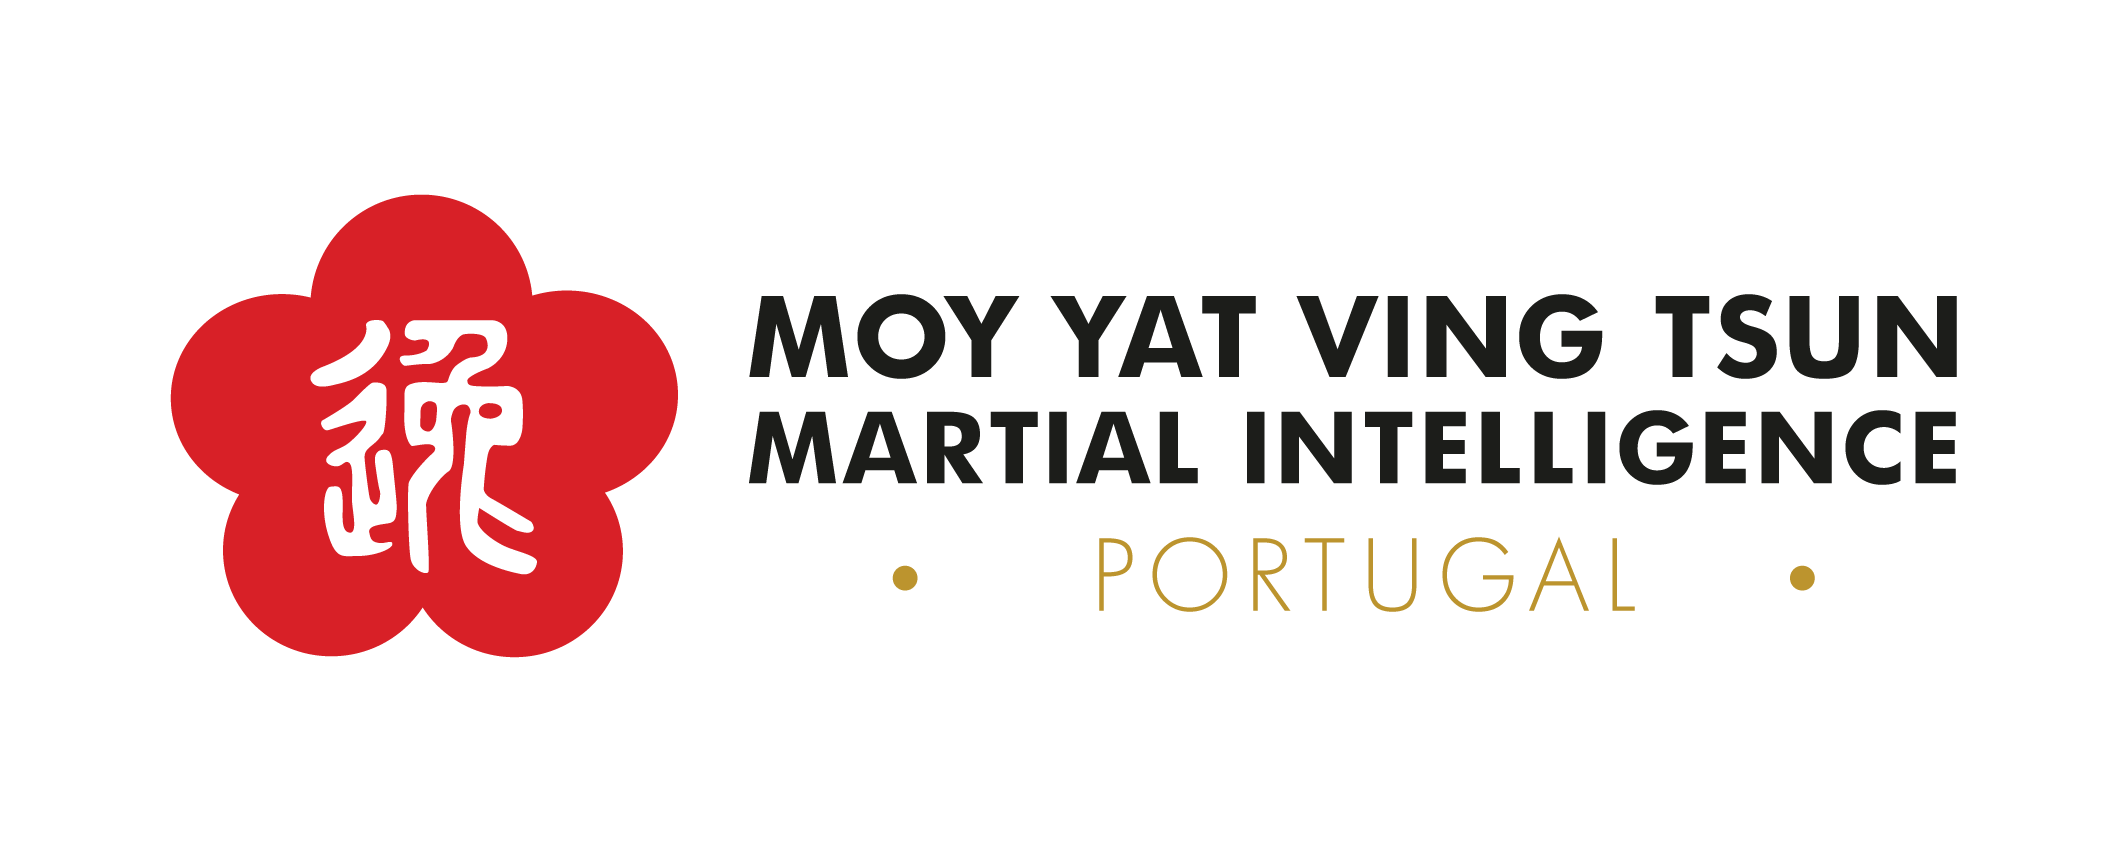 myvt-portugal